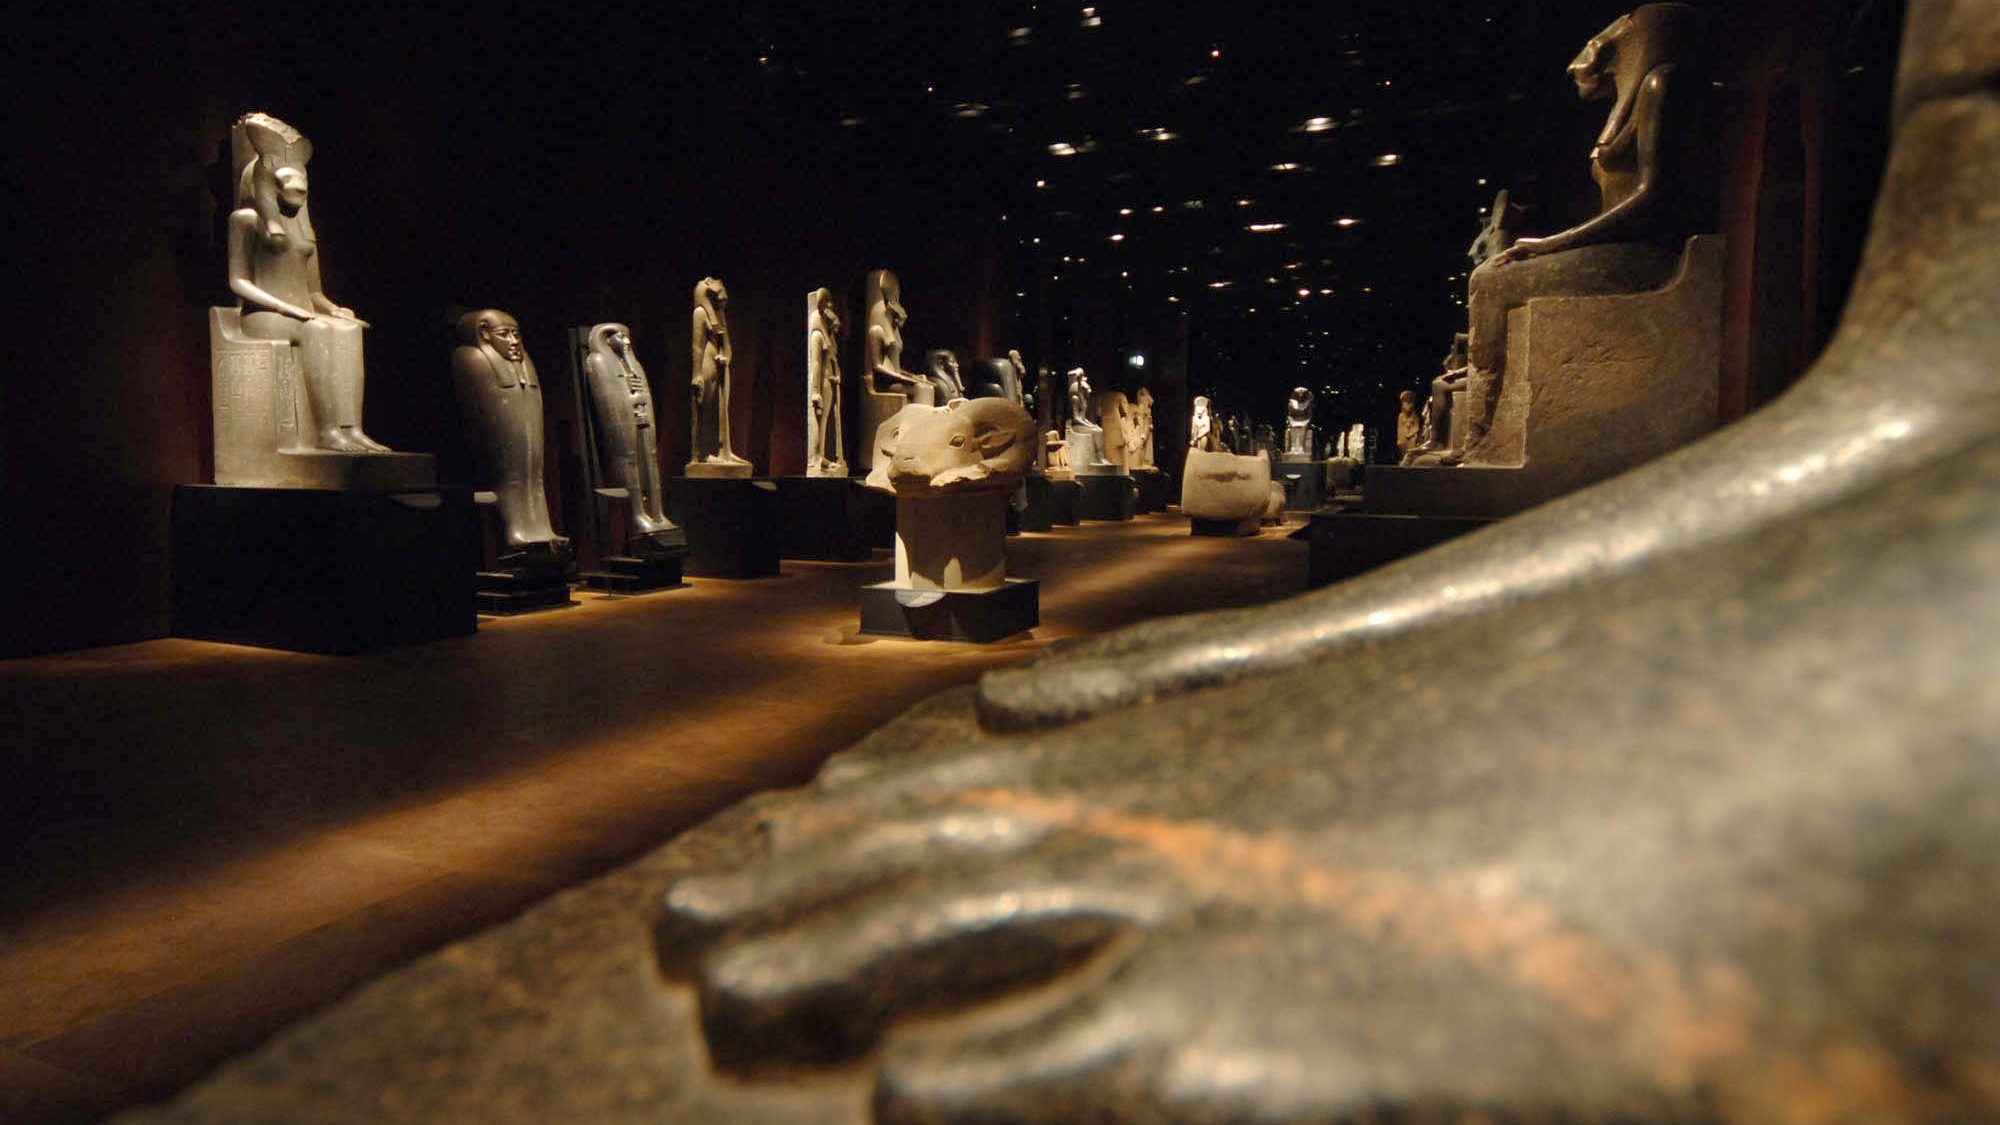 Turin's Egyptian Museum